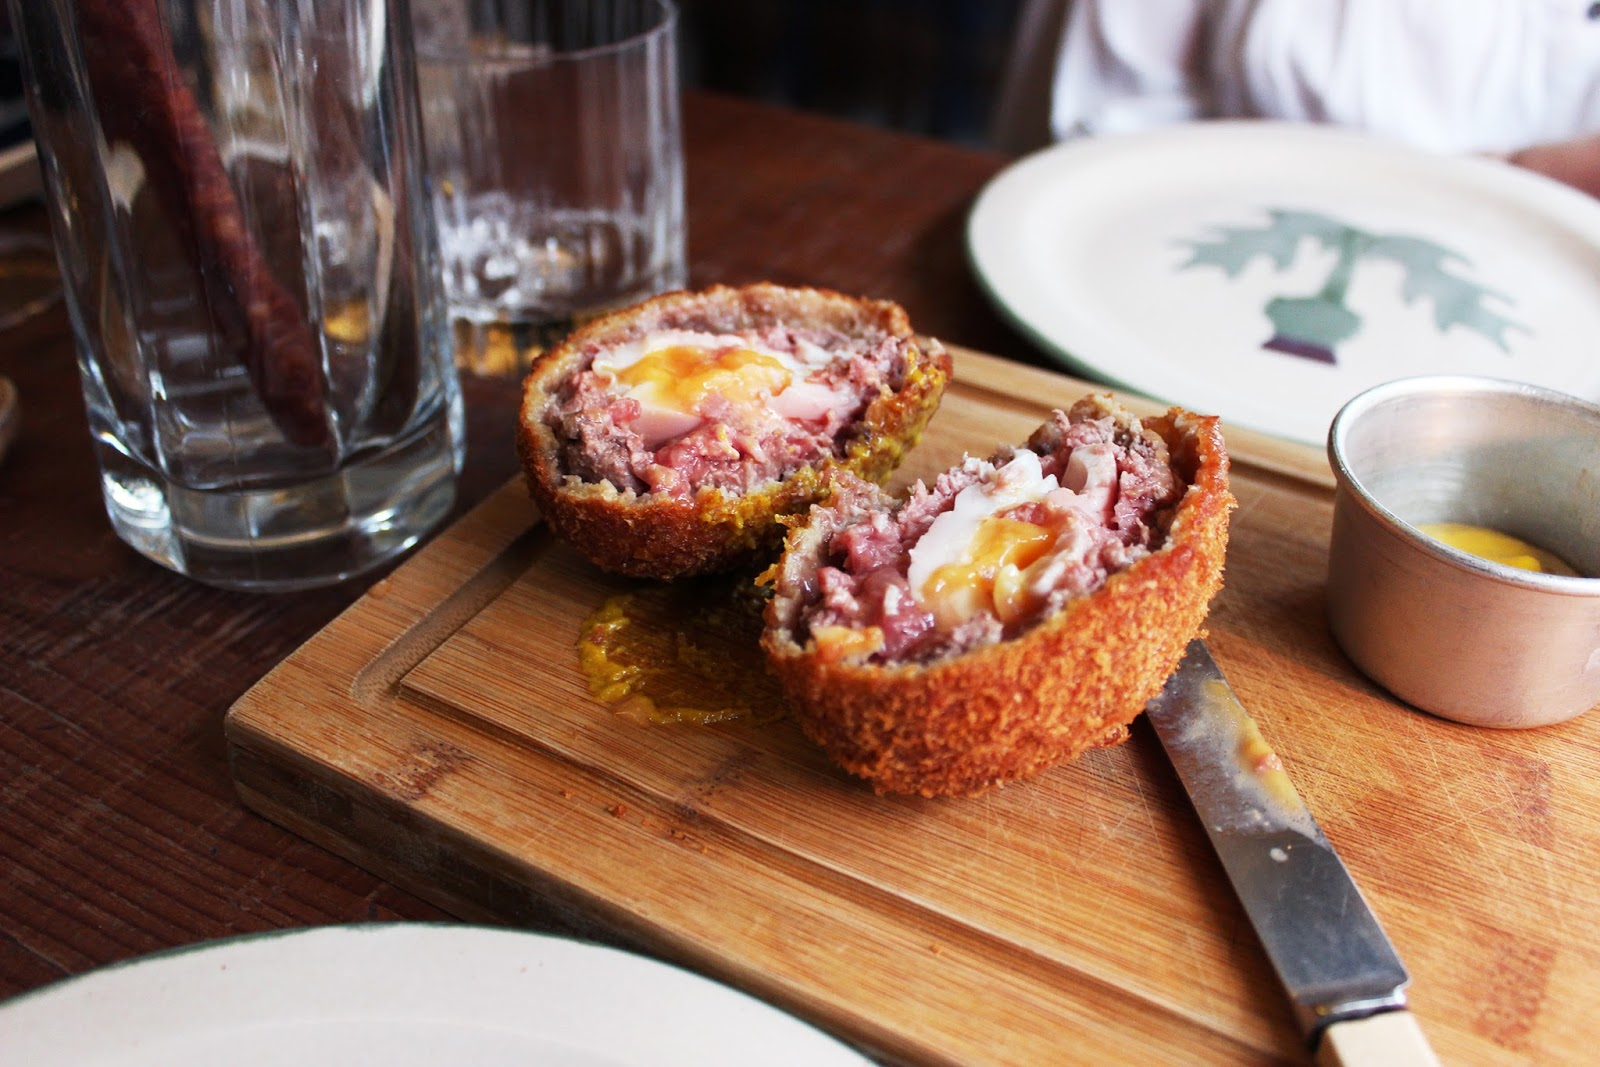 Mac and Wild restaurant review - venison scotch egg